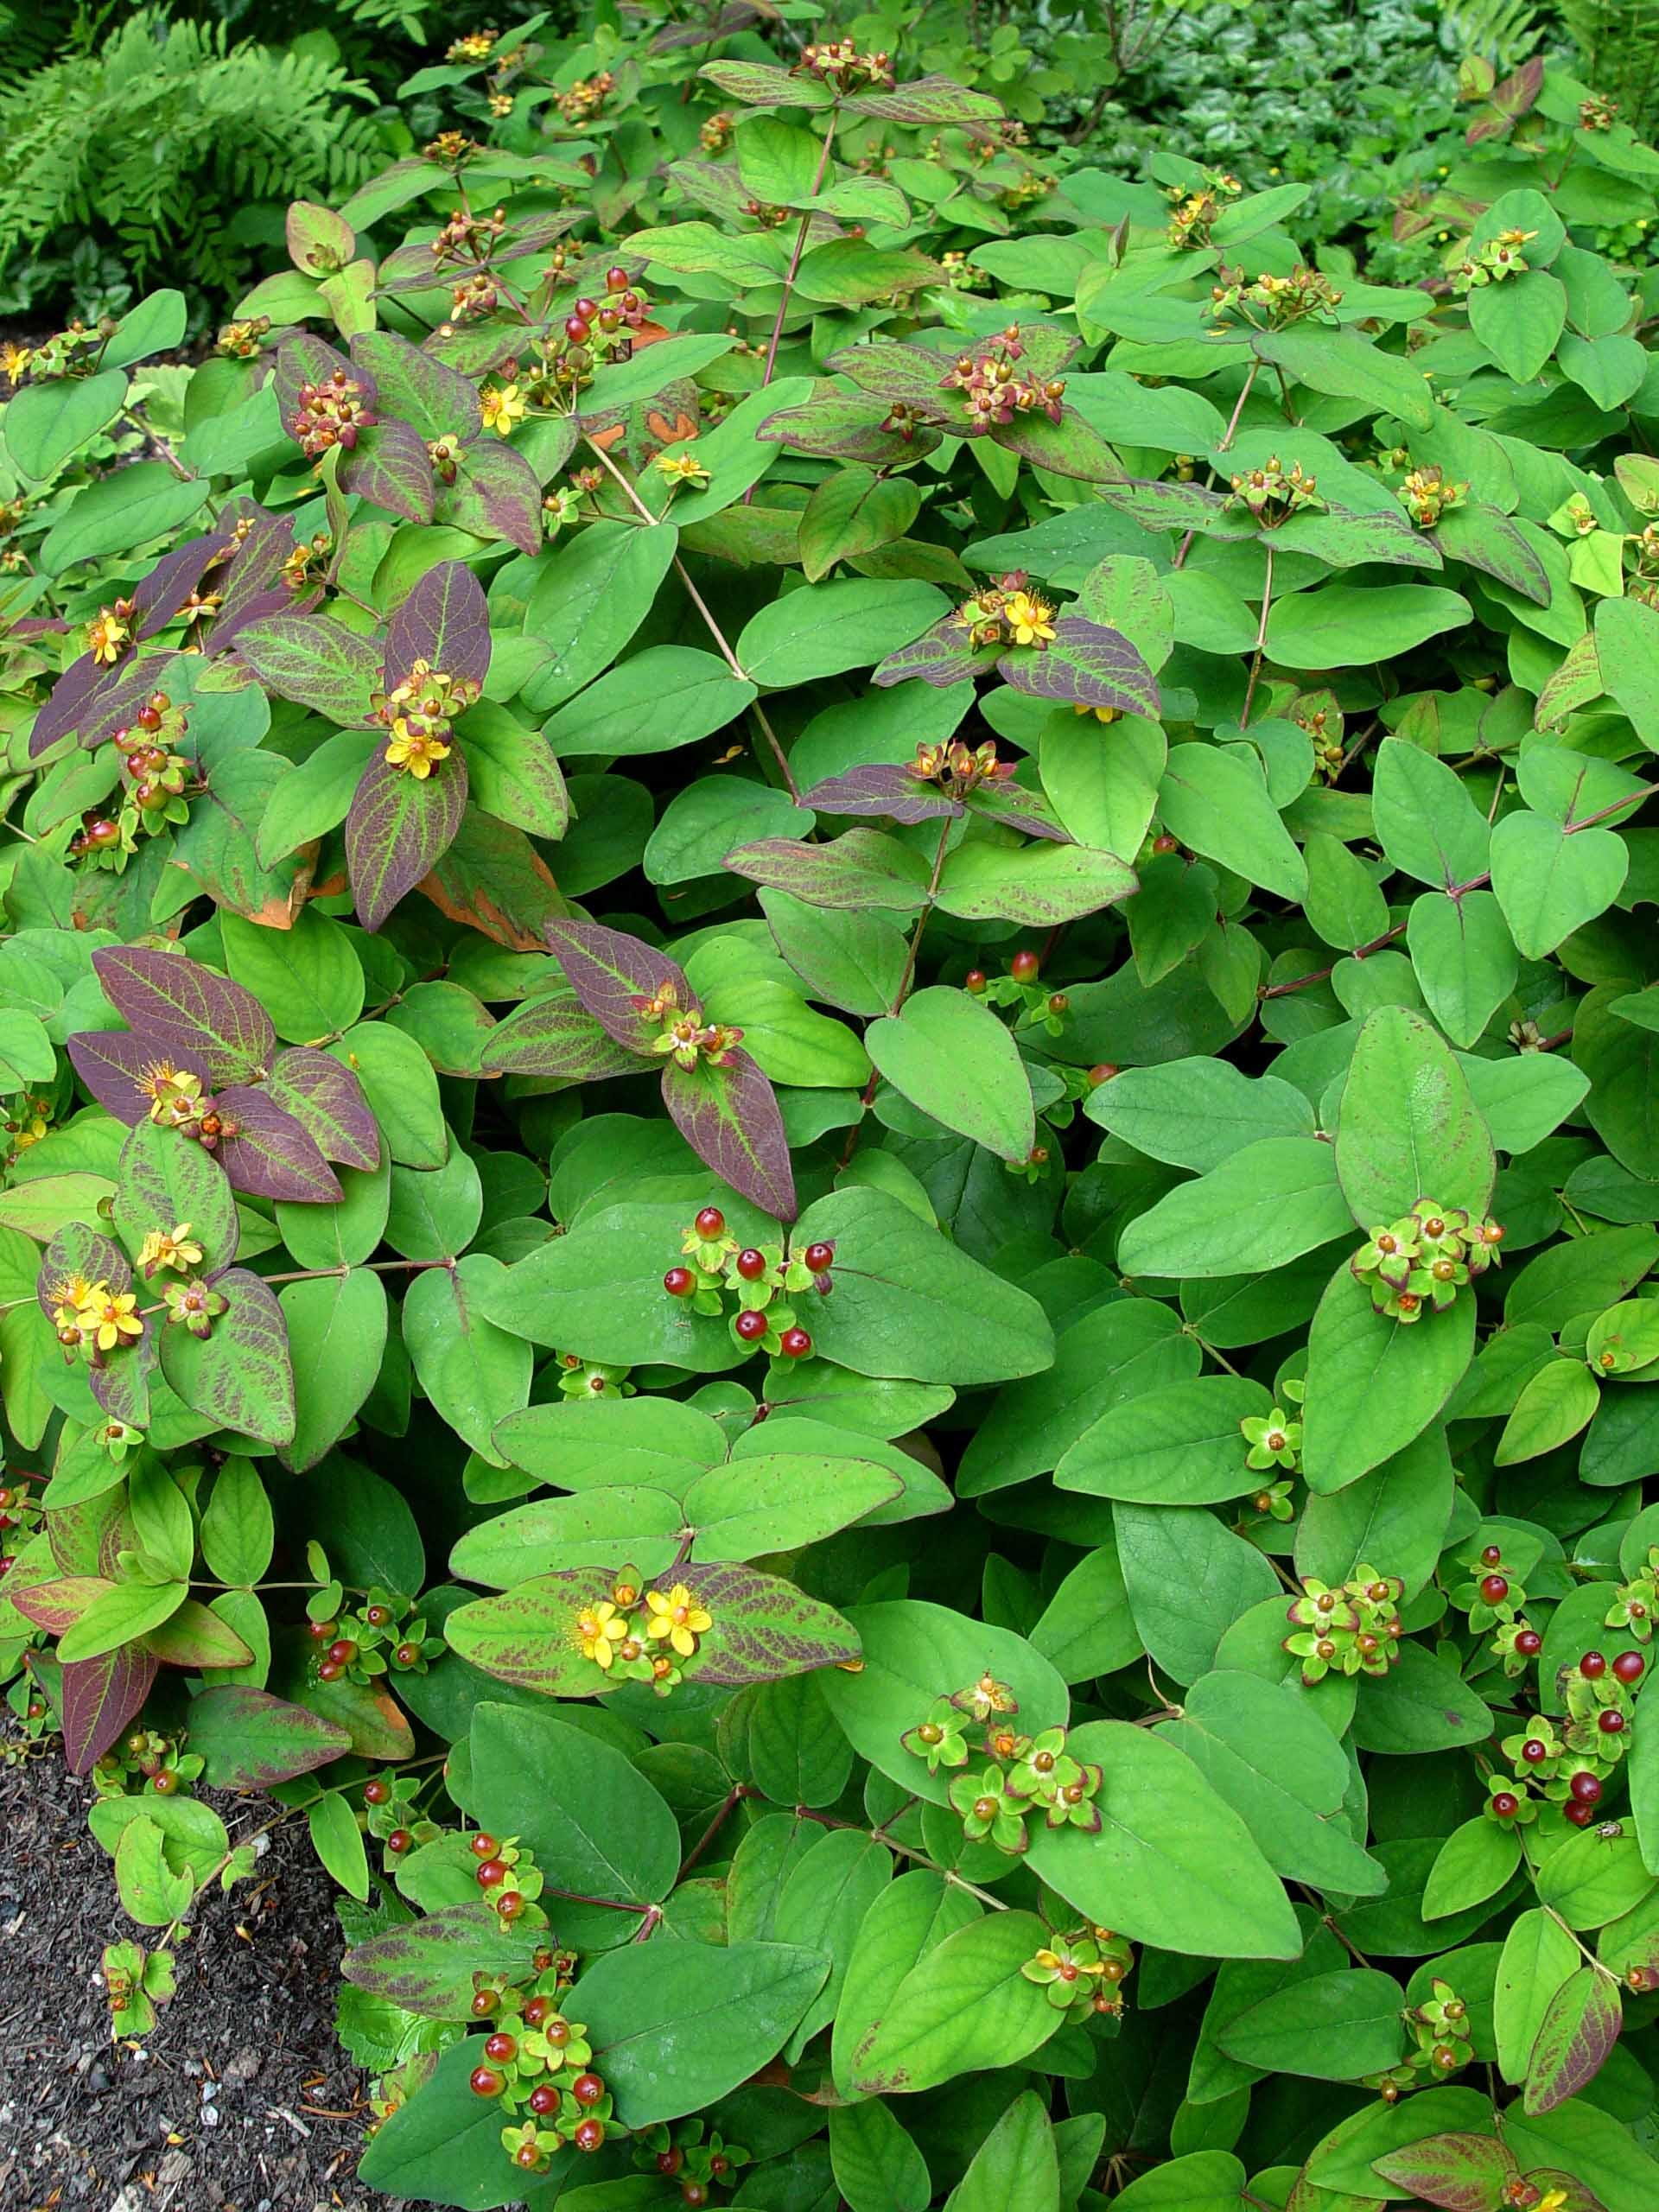 Deer Resistant Ground Cover Perennials: St. Johnswort 'Albury Purple'